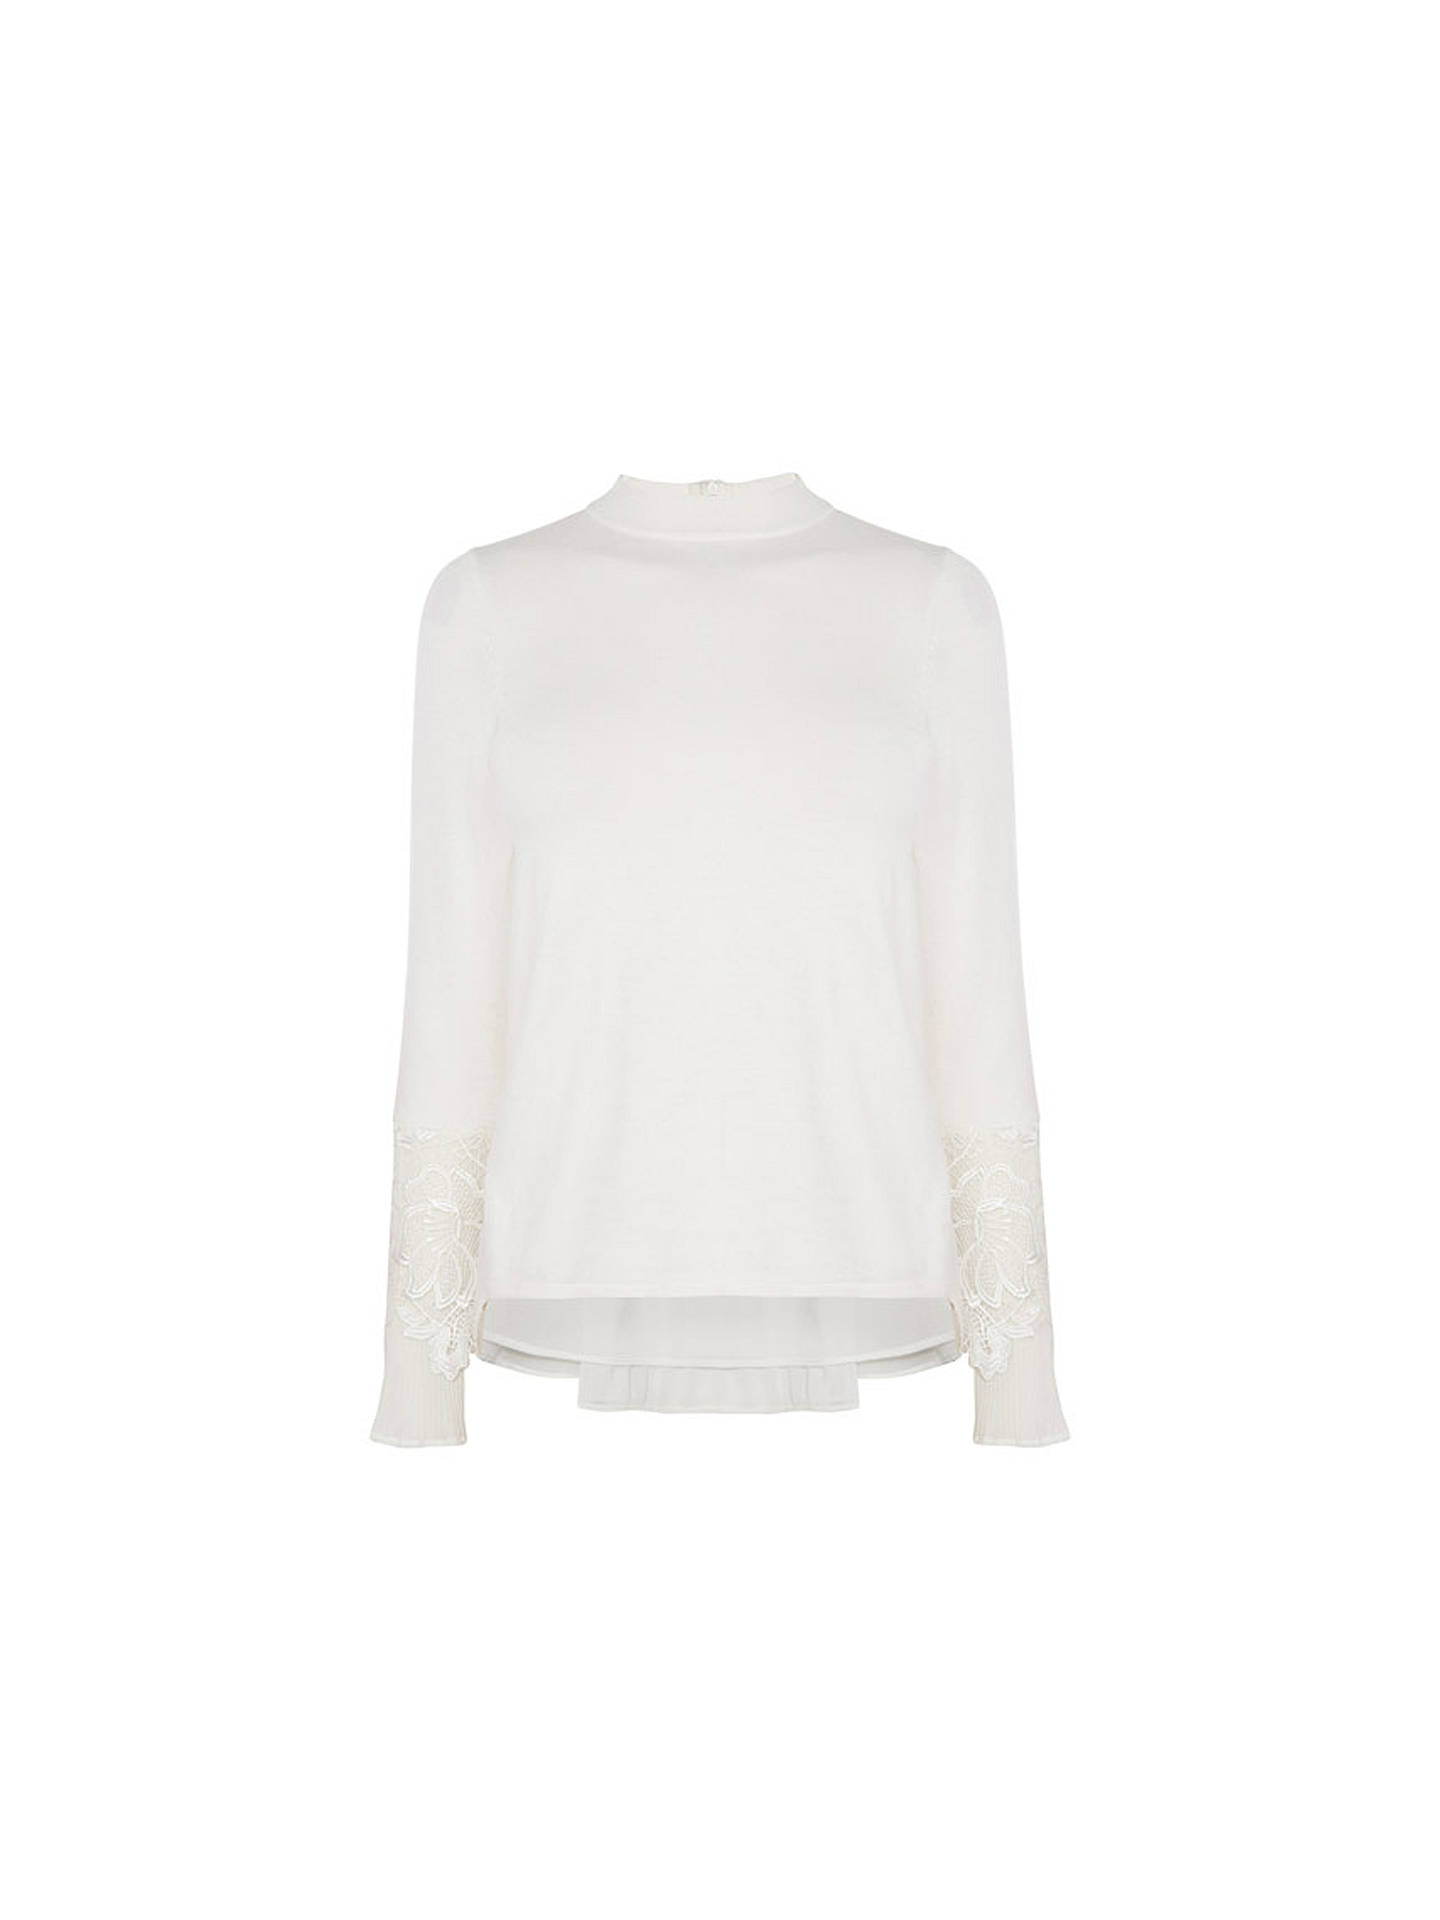 BuyCoast Rose Pleat Lace Knit Top, Ivory, XS Online at johnlewis.com